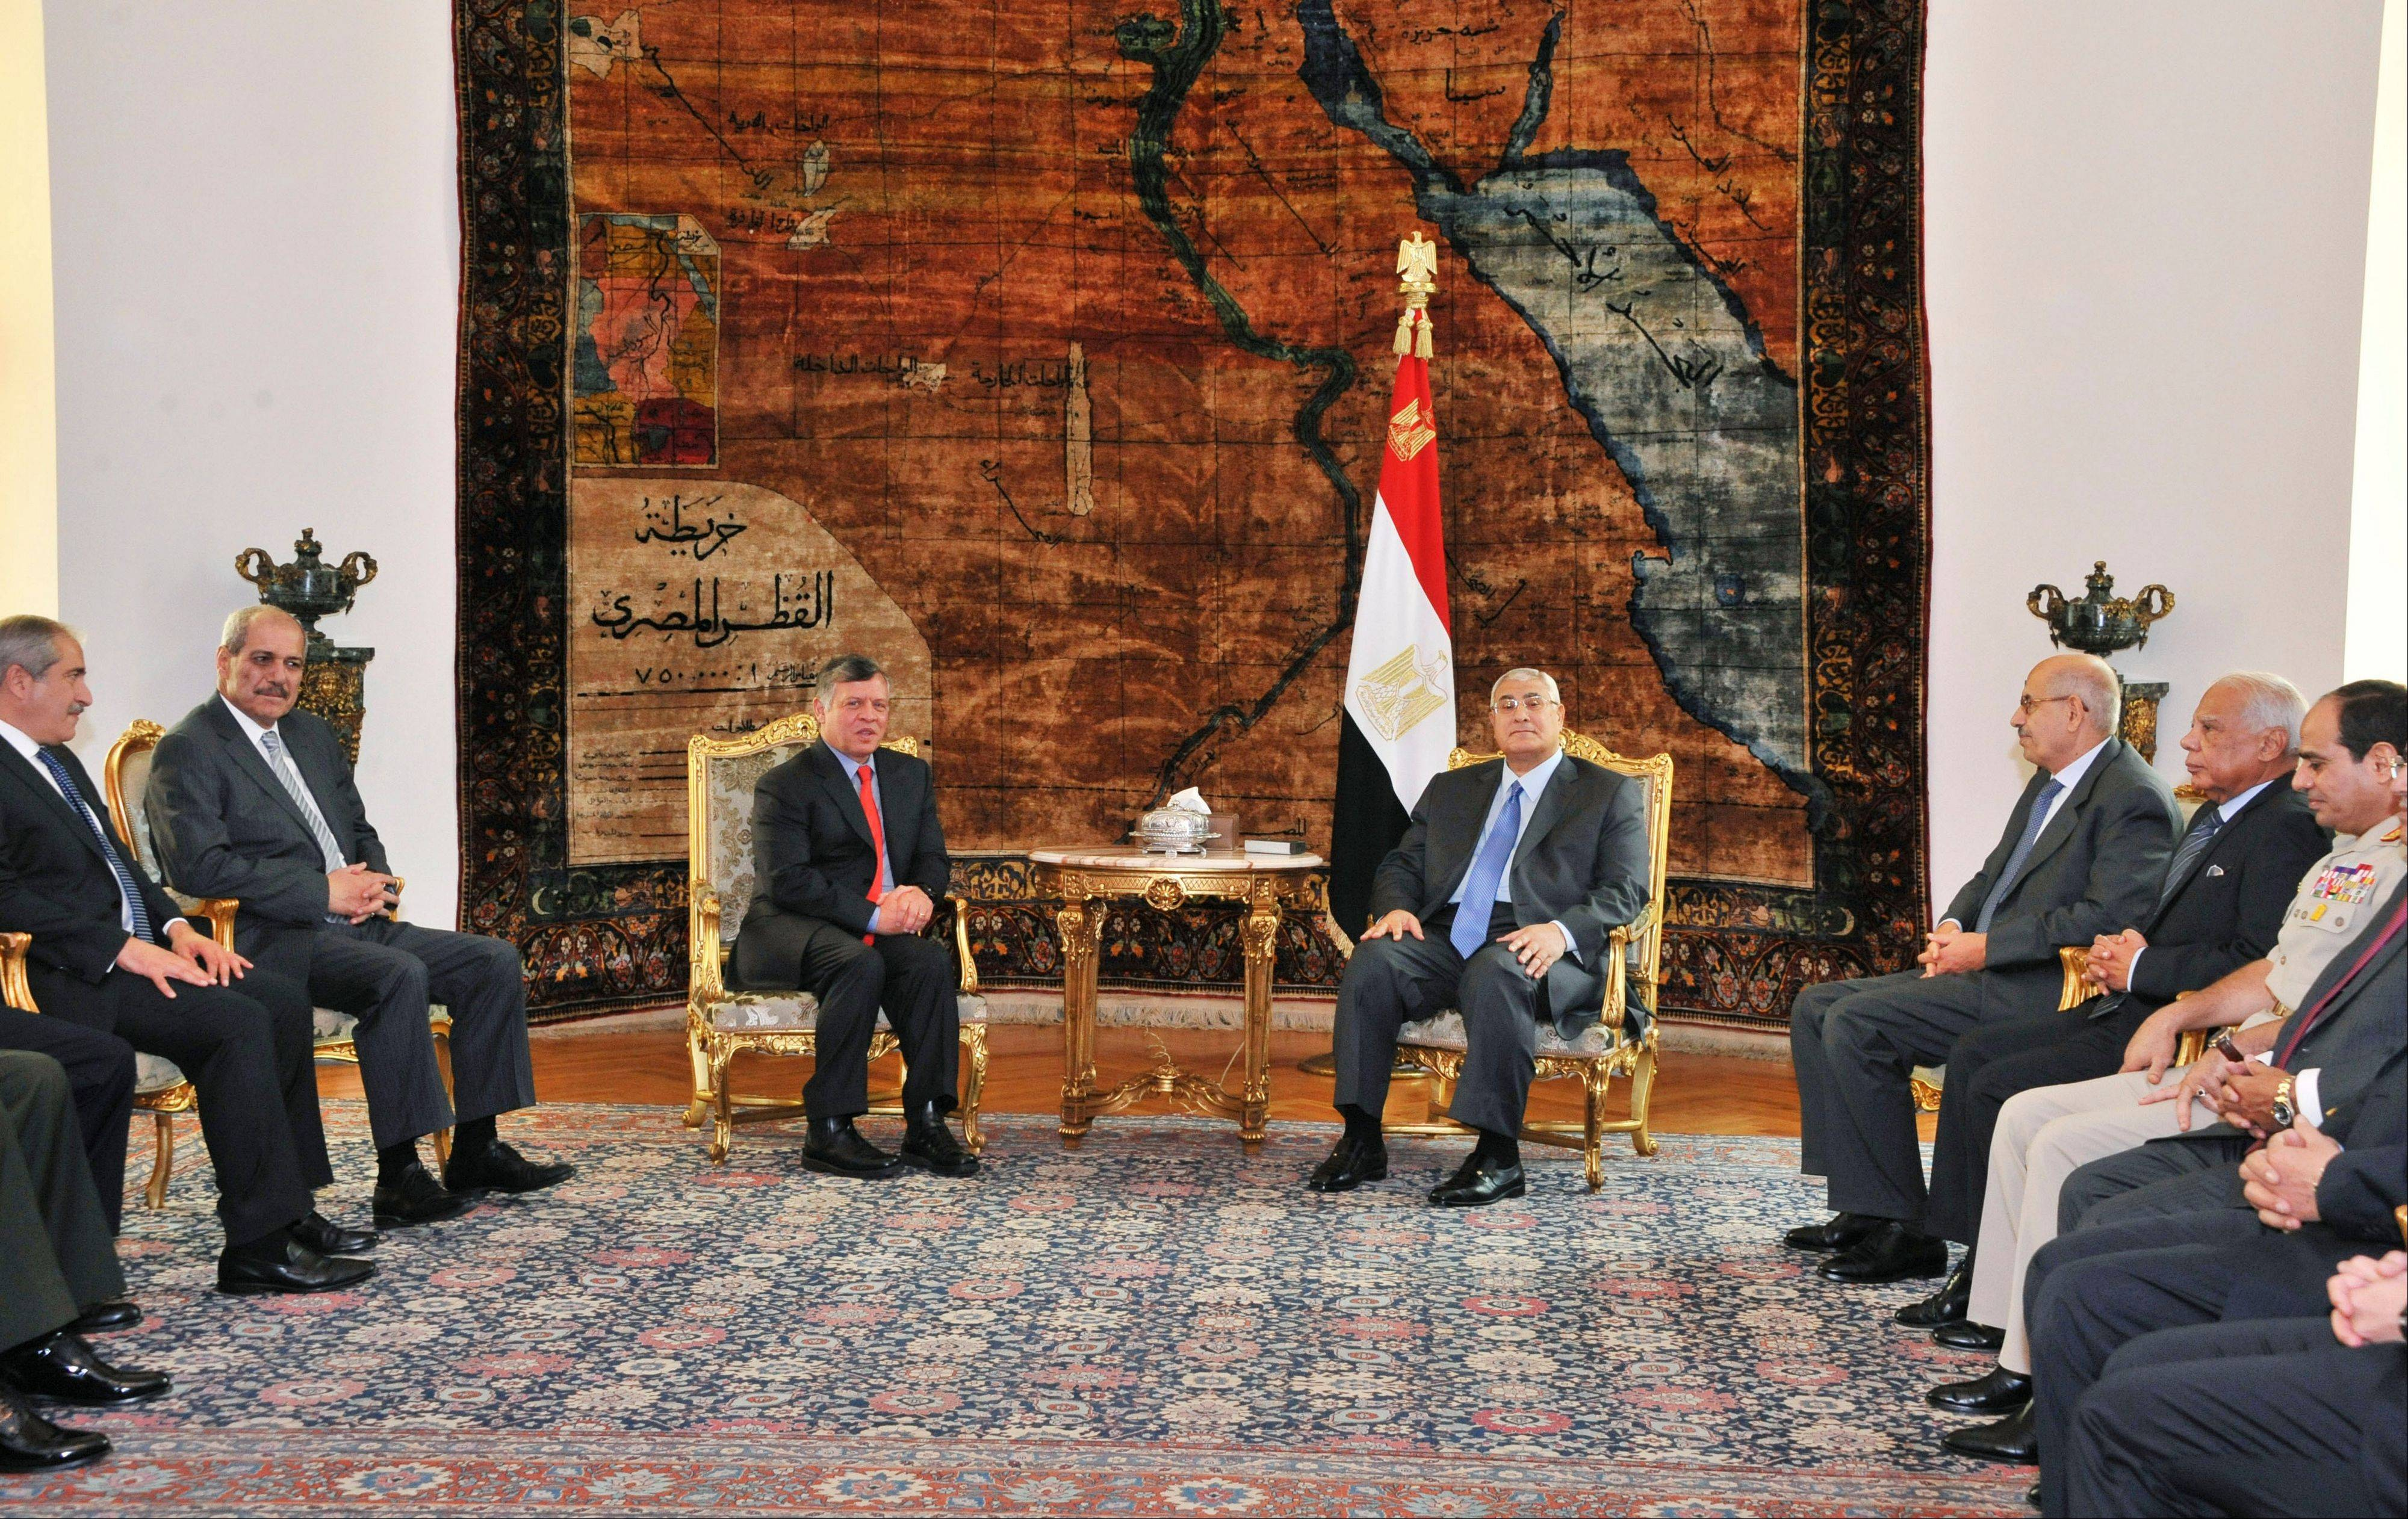 Associated Press In this image released by the Egyptian presidency, Egypt�s President Adly Mansour, center right, meets Jordan�s King Abdullah II, center left, at the presidential palace in Cairo, Egypt, Saturday, July 20. Jordan�s King Abdullah II arrived in Egypt�s capital on Saturday for a short visit � the first visit by a head of state to Egypt since the ouster of President Mohamed Morsi on July 3. Jordan�s Foreign Minister Nasser Judeh, from left, Chief of the Jordanian Royal Court Fayez Tarawneh, Vice President Mohammed ElBaradei, Prime Minister Hazem el-Beblawi and Defense Minister Gen. Abdel-Fattah el-Sissi also joined the meeting.